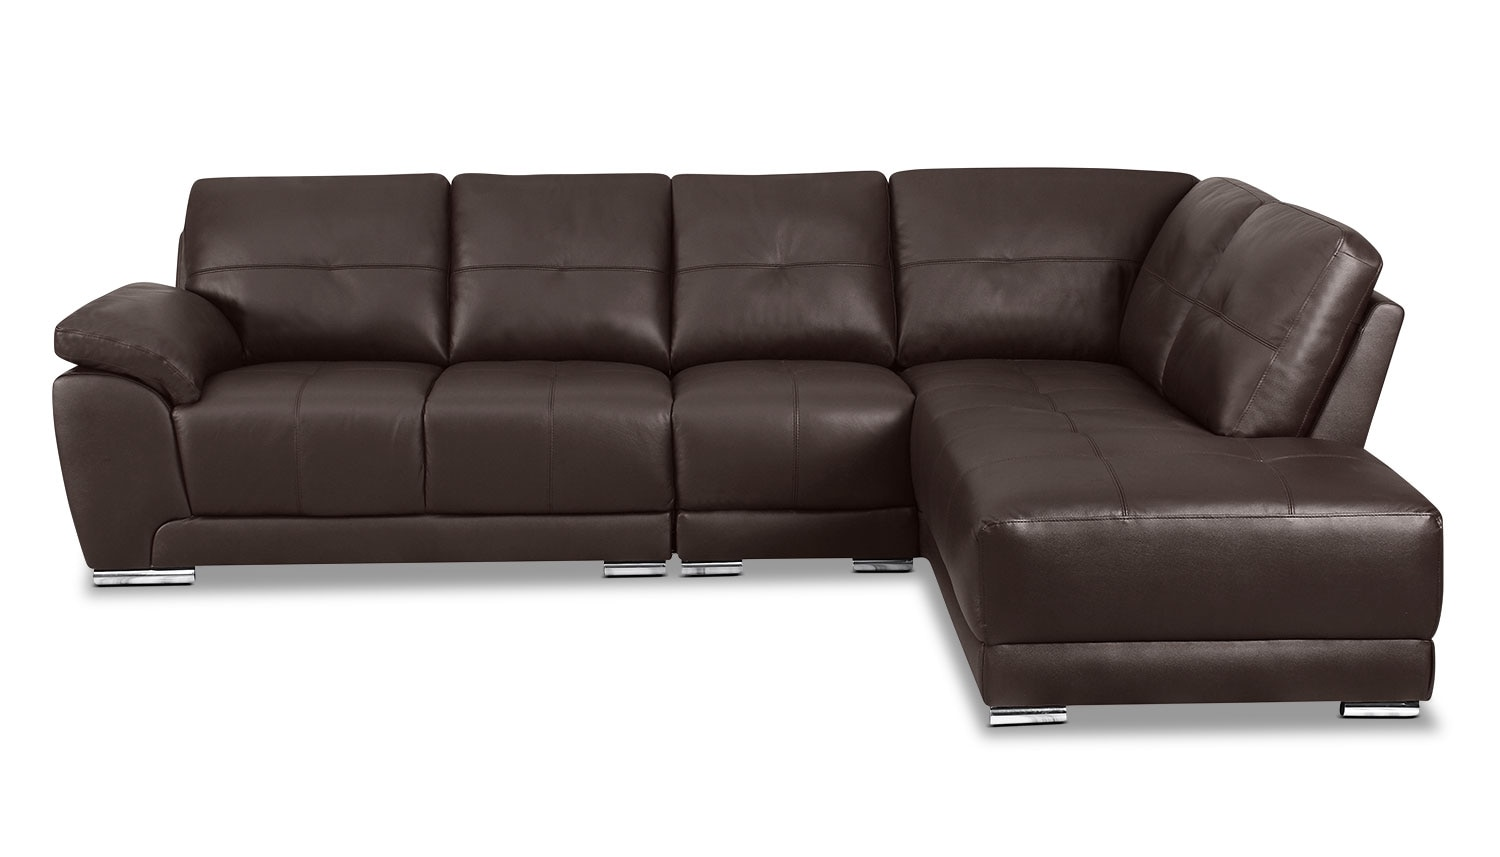 Rylee 3 piece genuine leather right facing sectional for Macys rylee sectional sofa